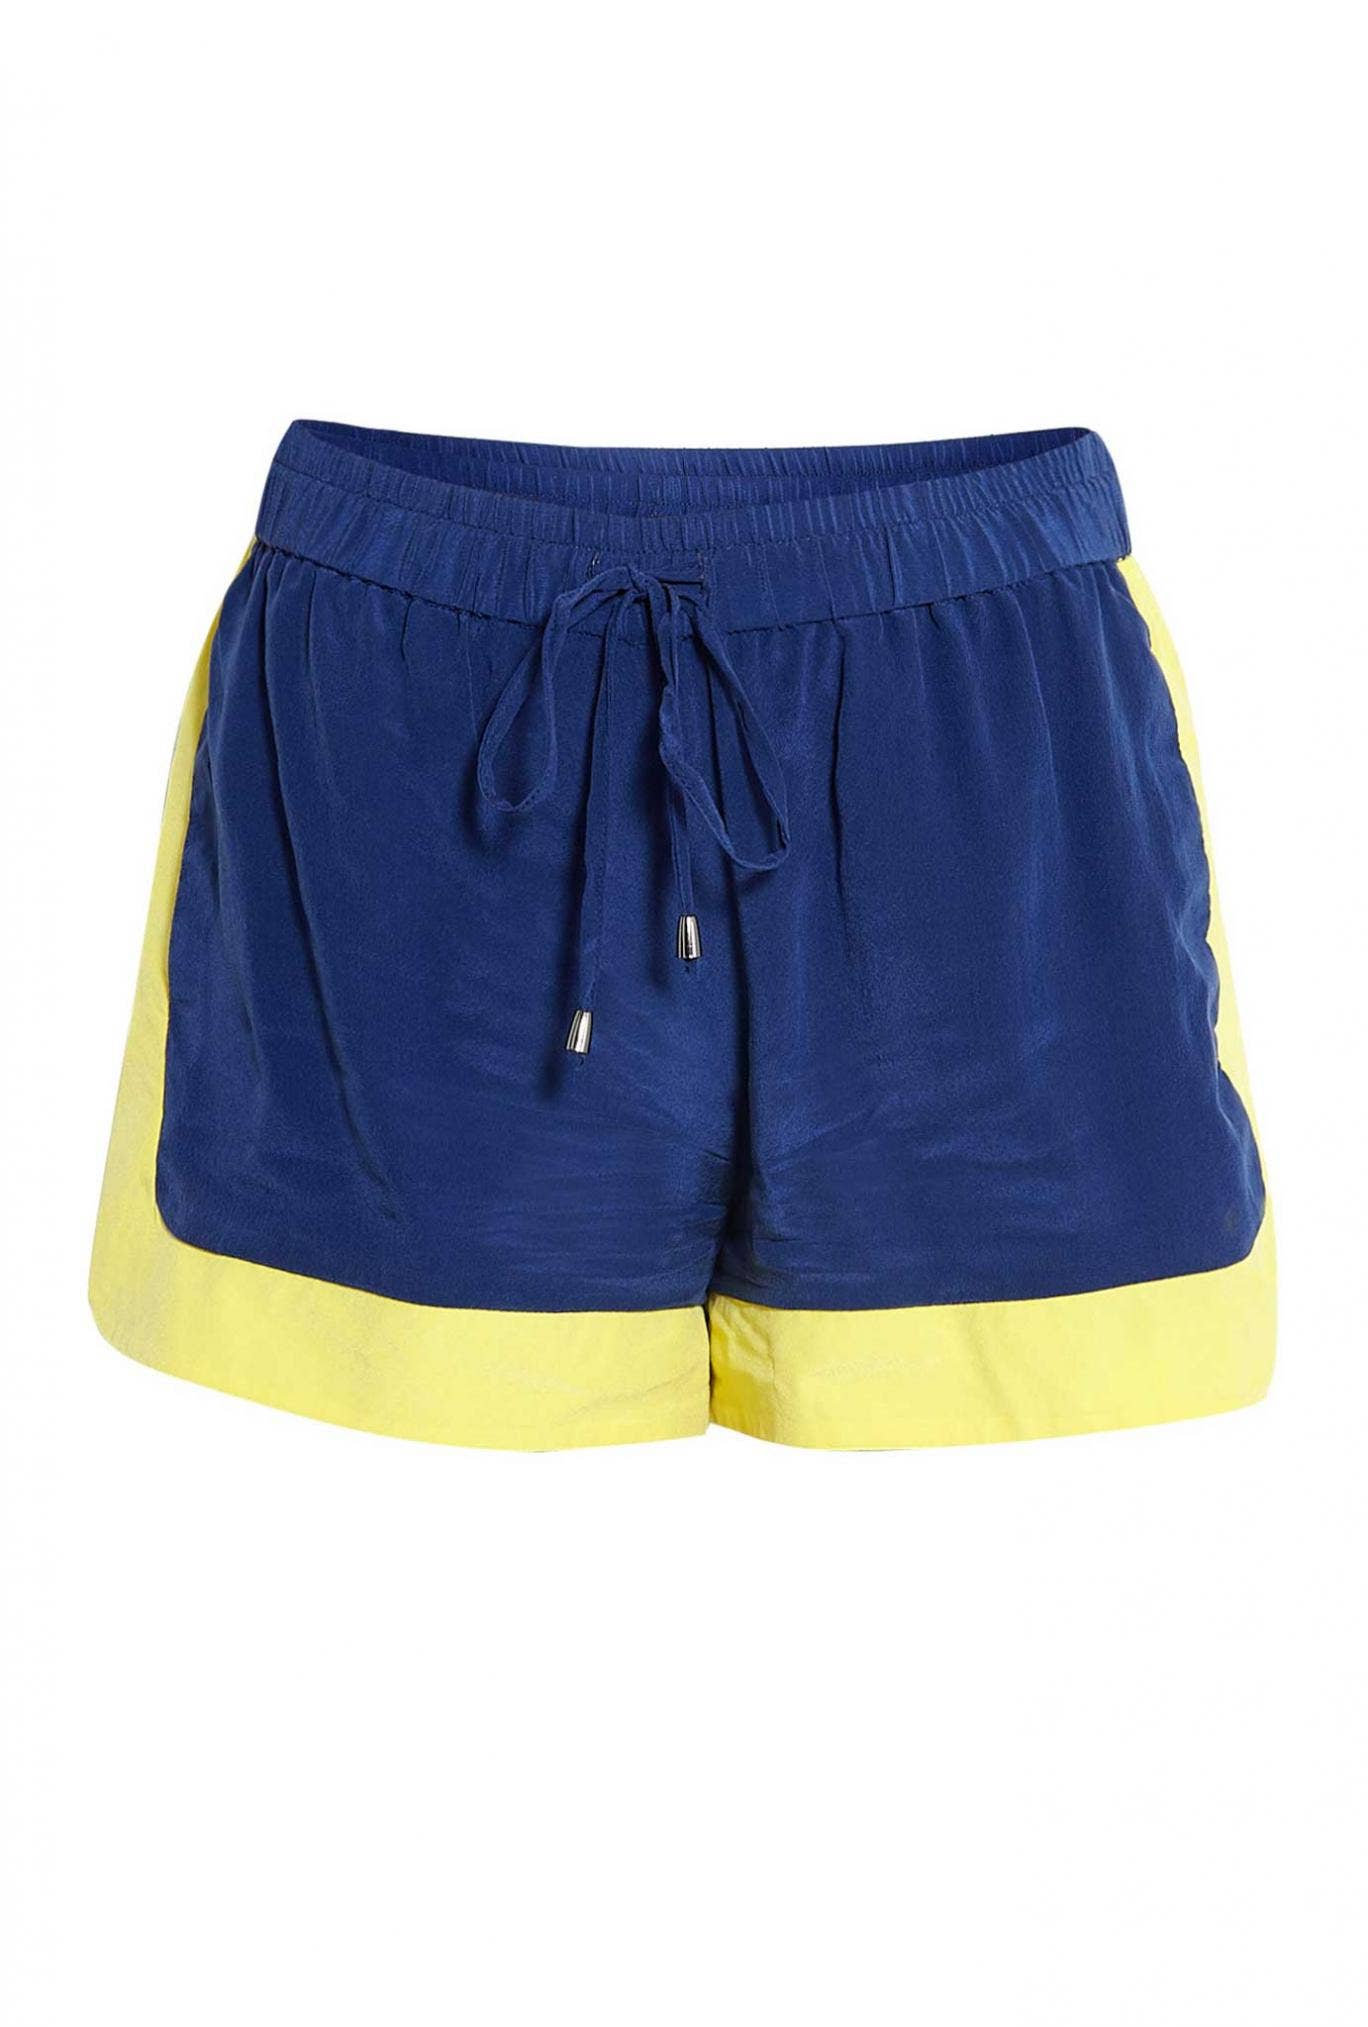 These loose, sports-luxe shorts from Emma Cook (£216, my-wardrobe.com) are casual with a tee and flats or sharpened up with a jacket and wedges